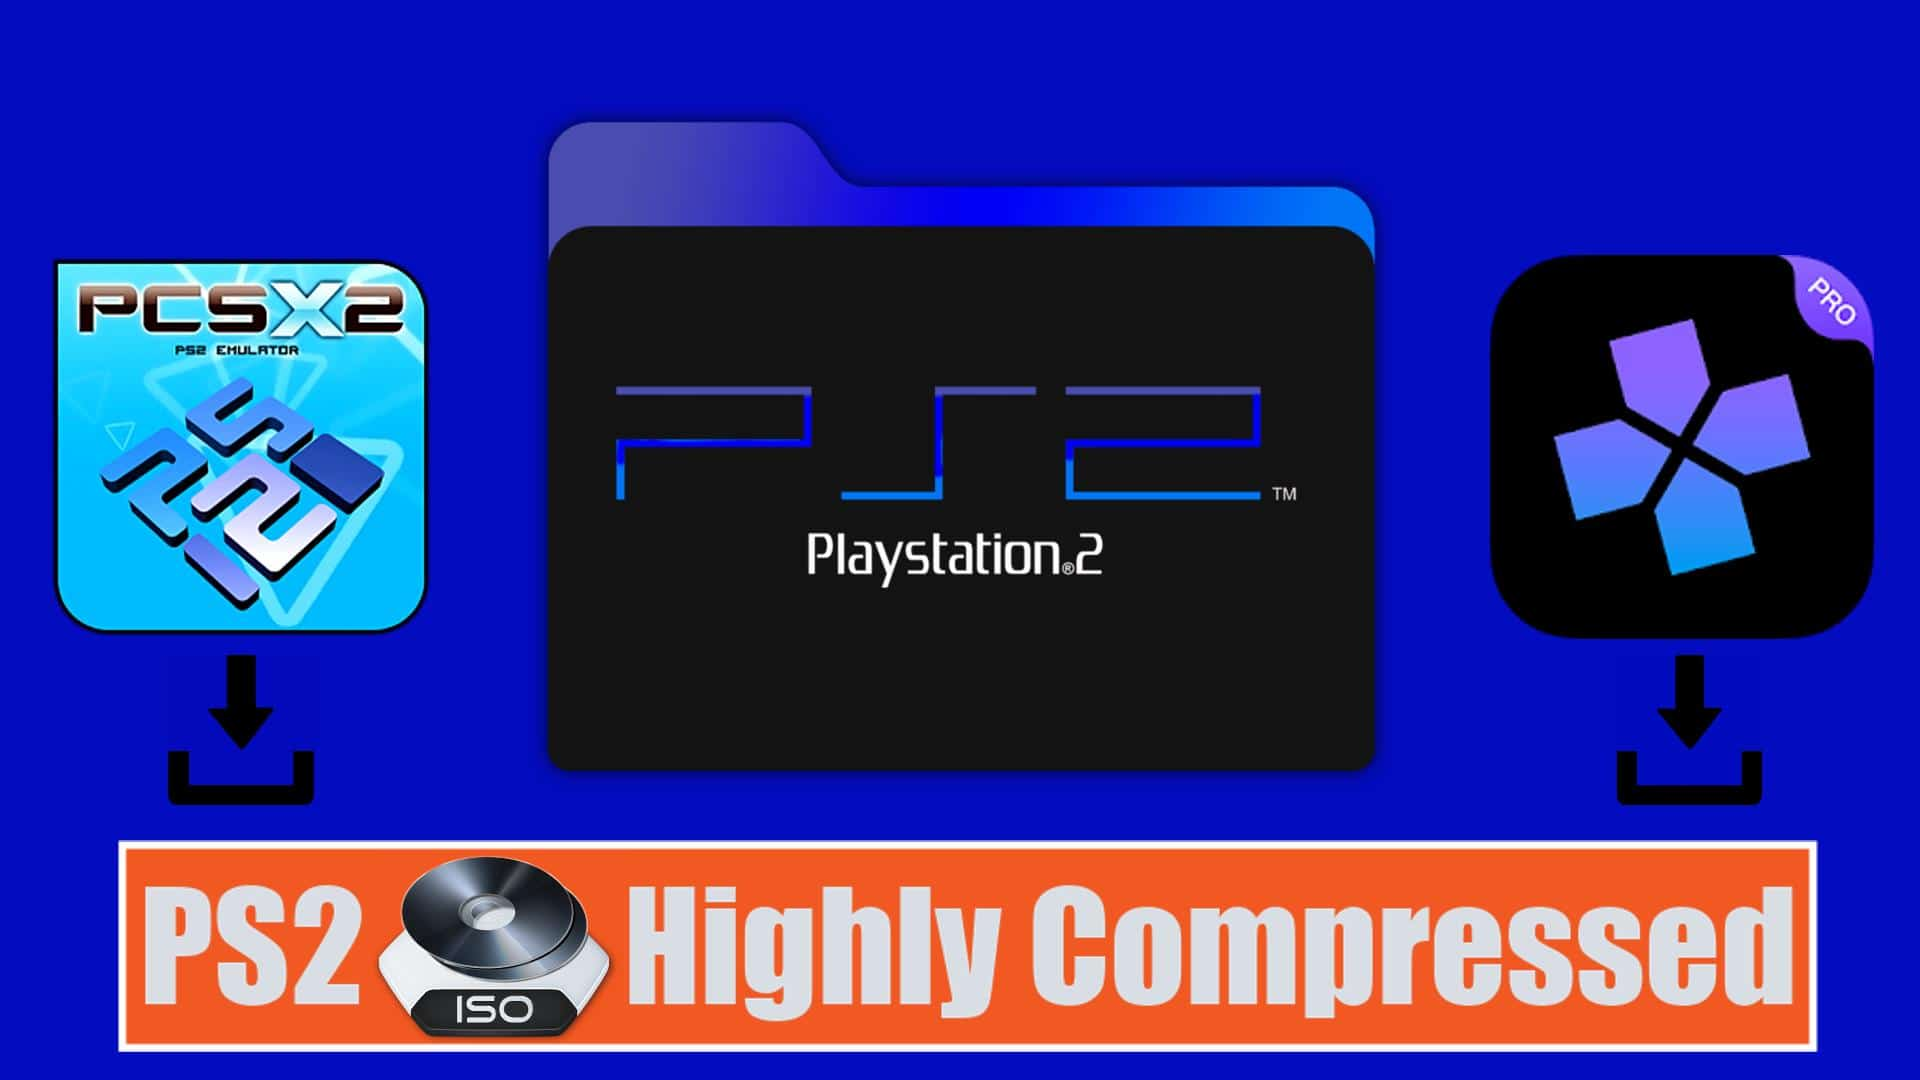 PS2 ISO Highly Compressed